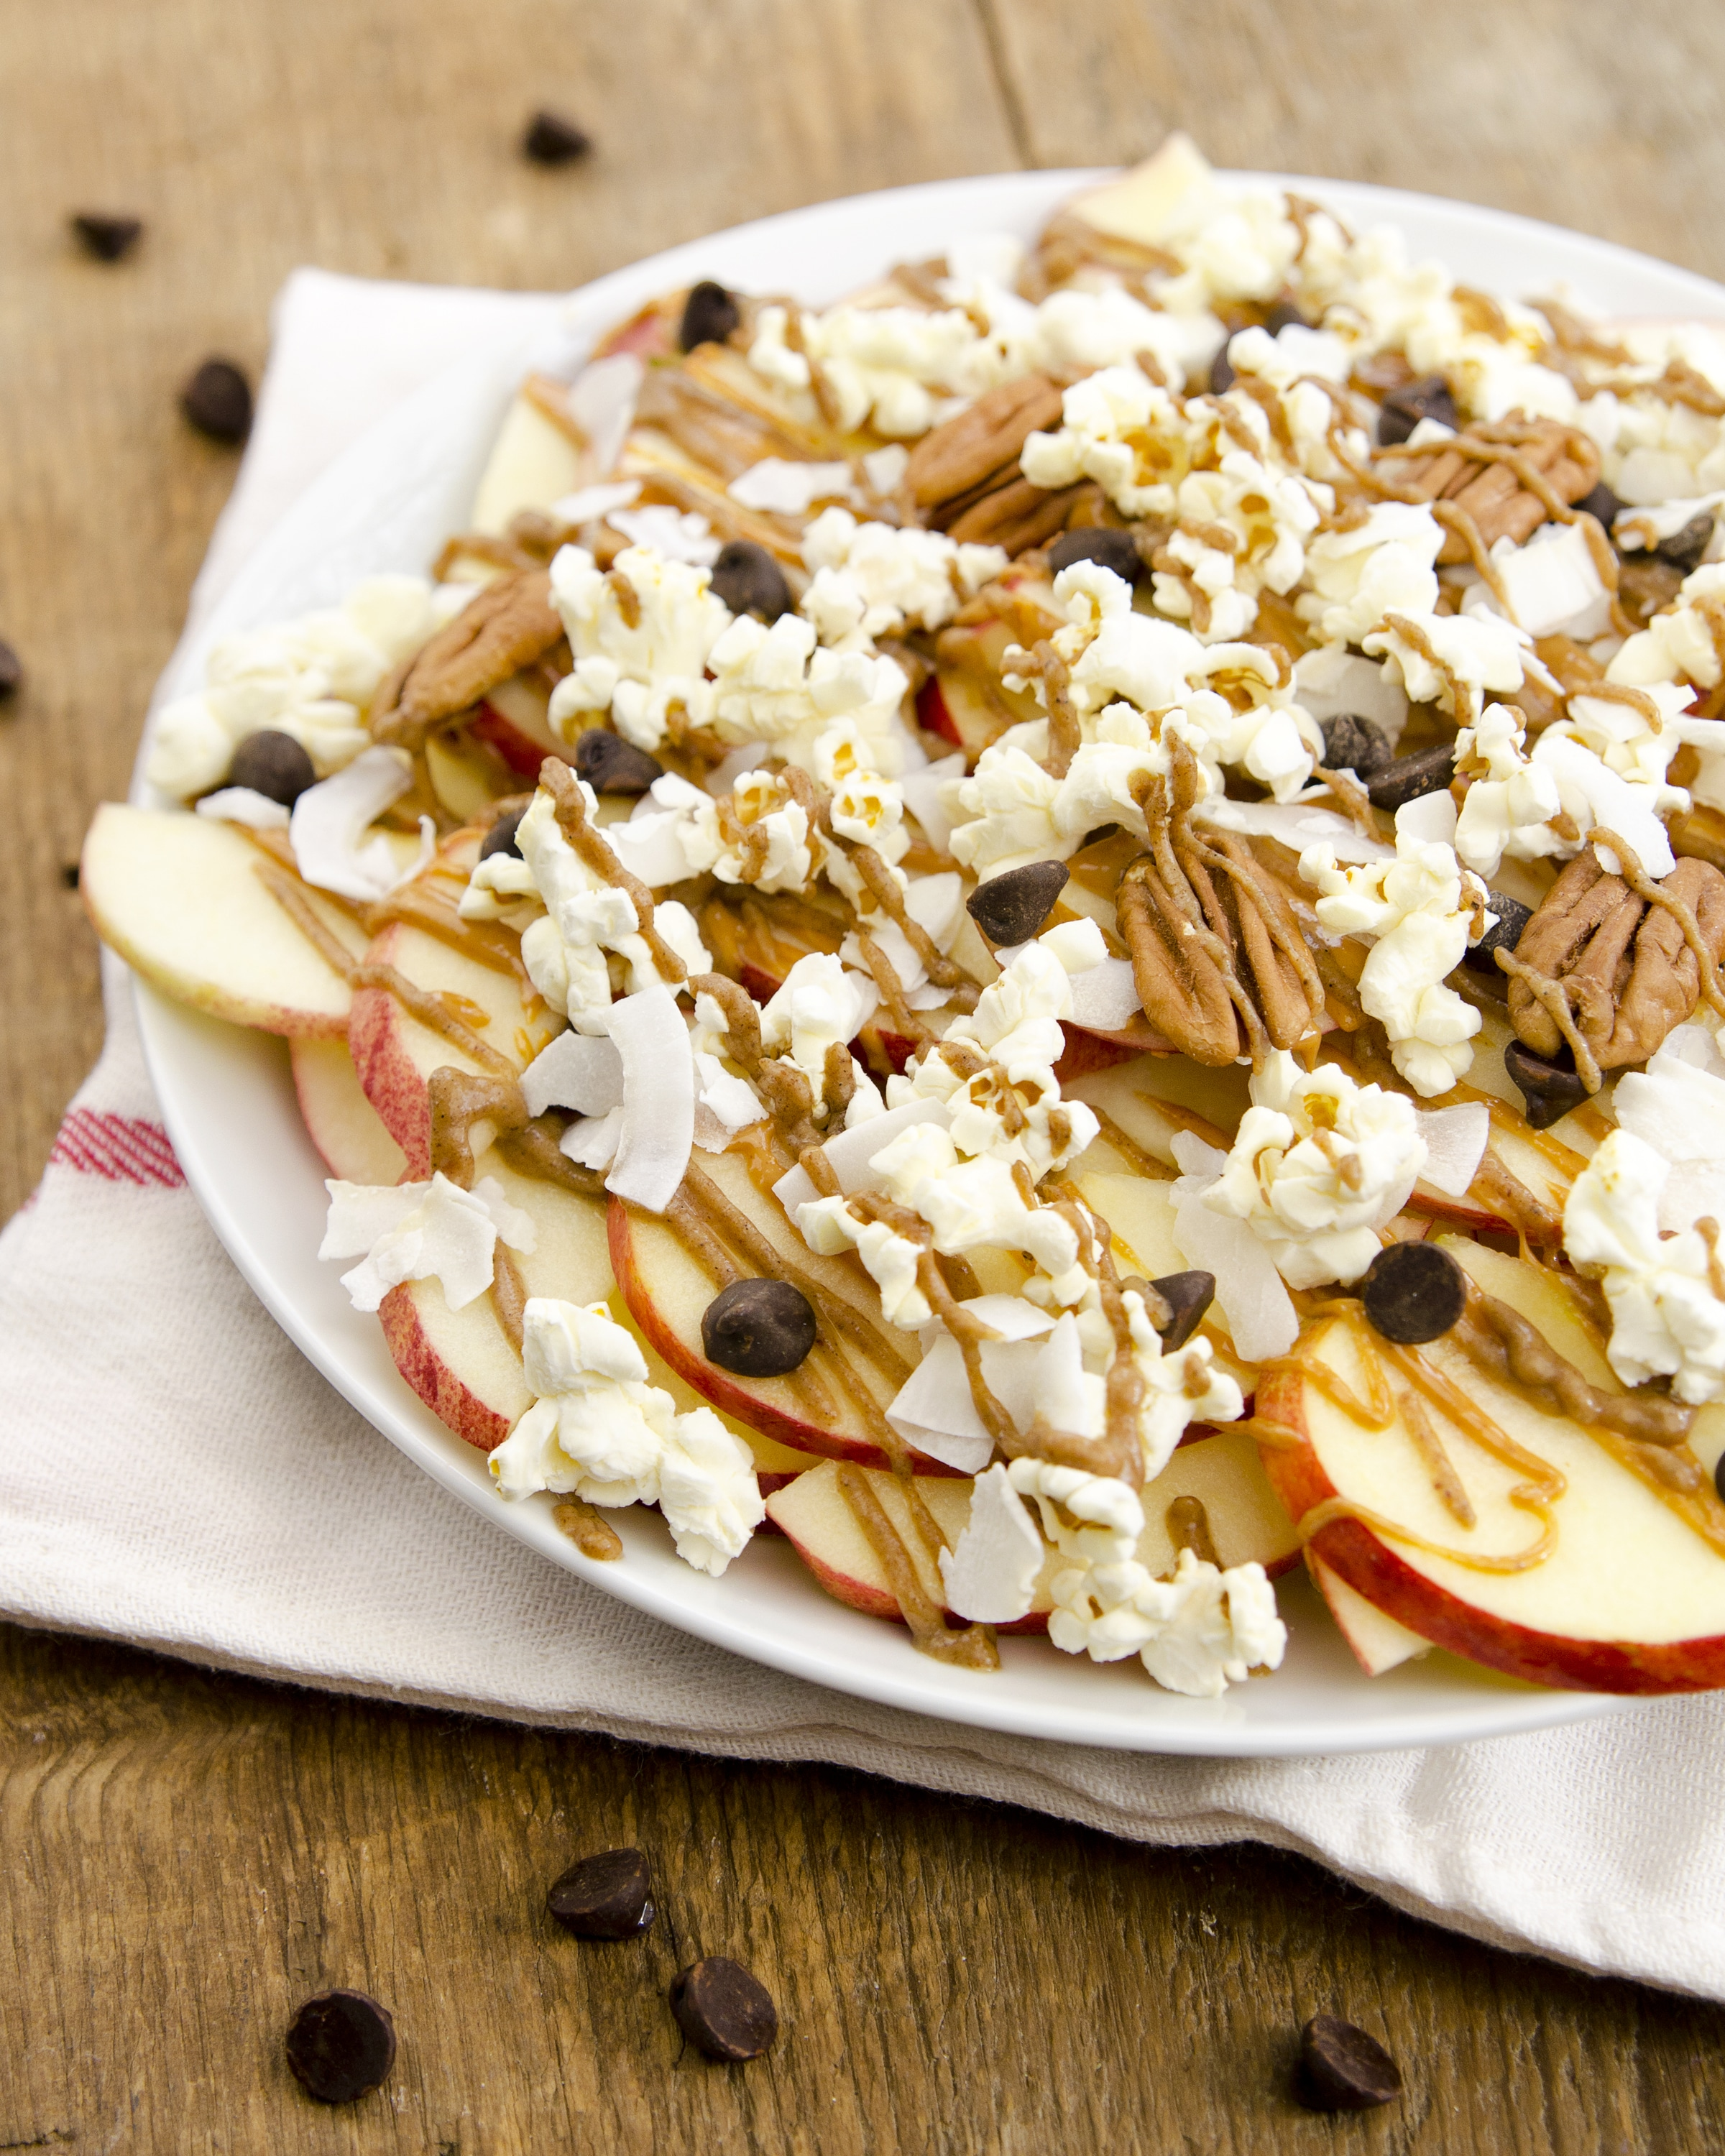 sliced apples topped with a date-sweetened caramel, chocolate chips, nuts, and popcorn